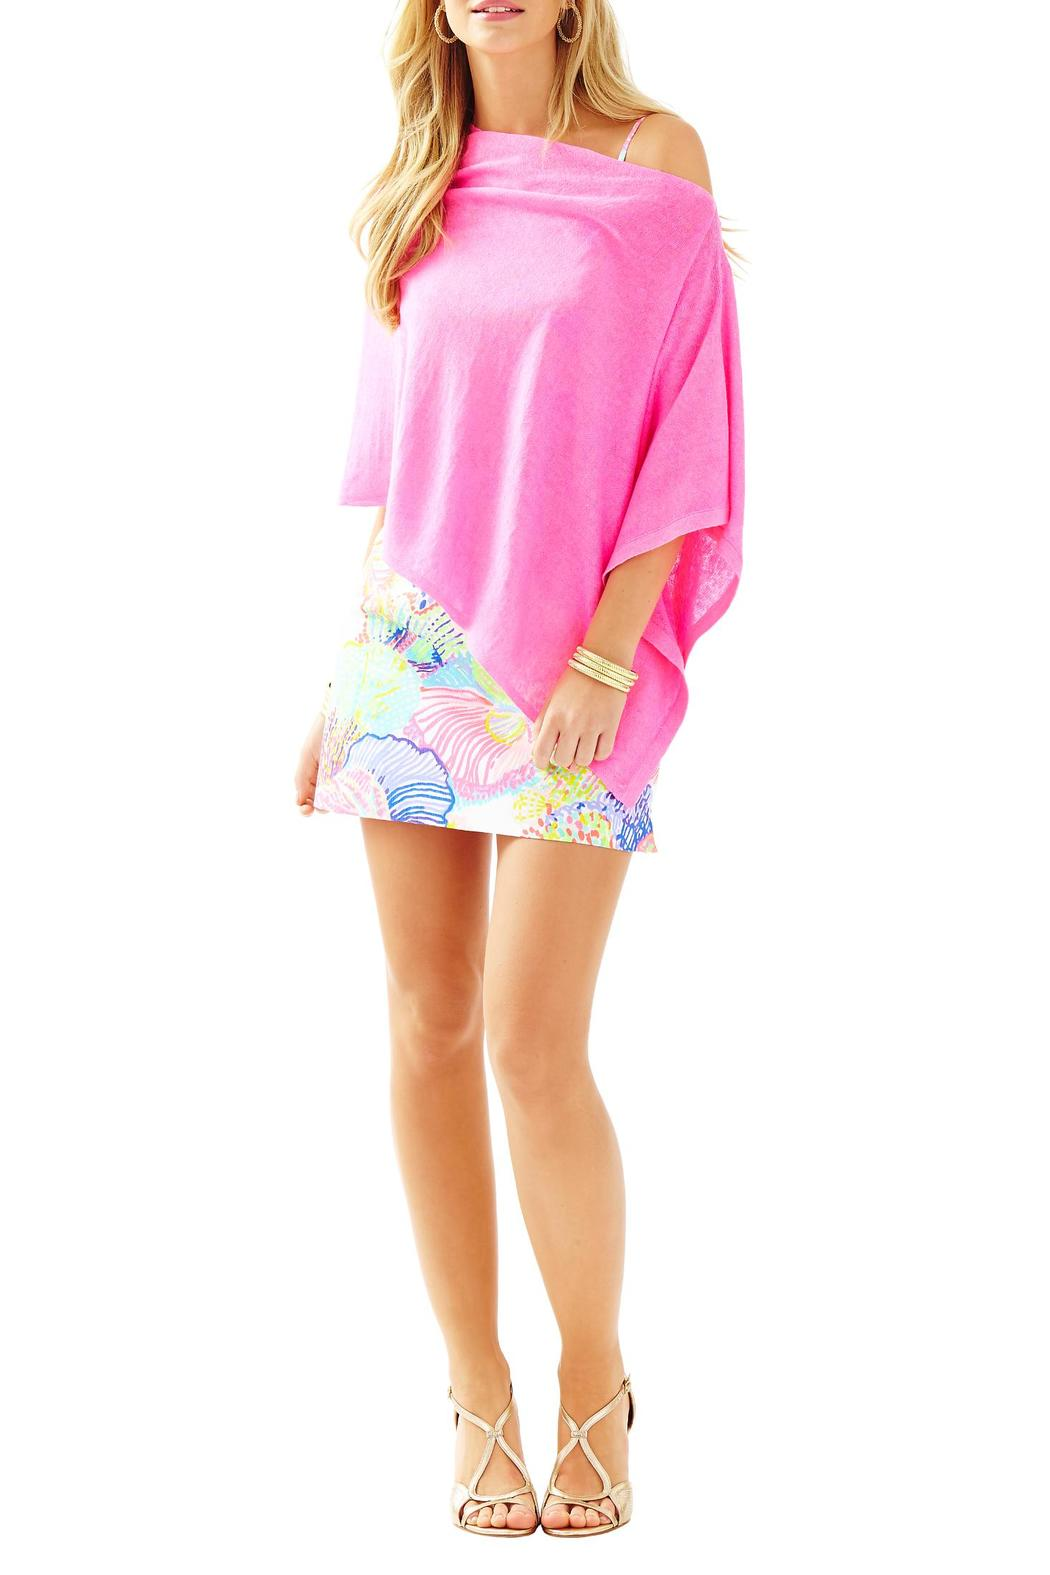 Lilly Pulitzer Bayshore Sweater Wrap from Sandestin Golf and Beach ...